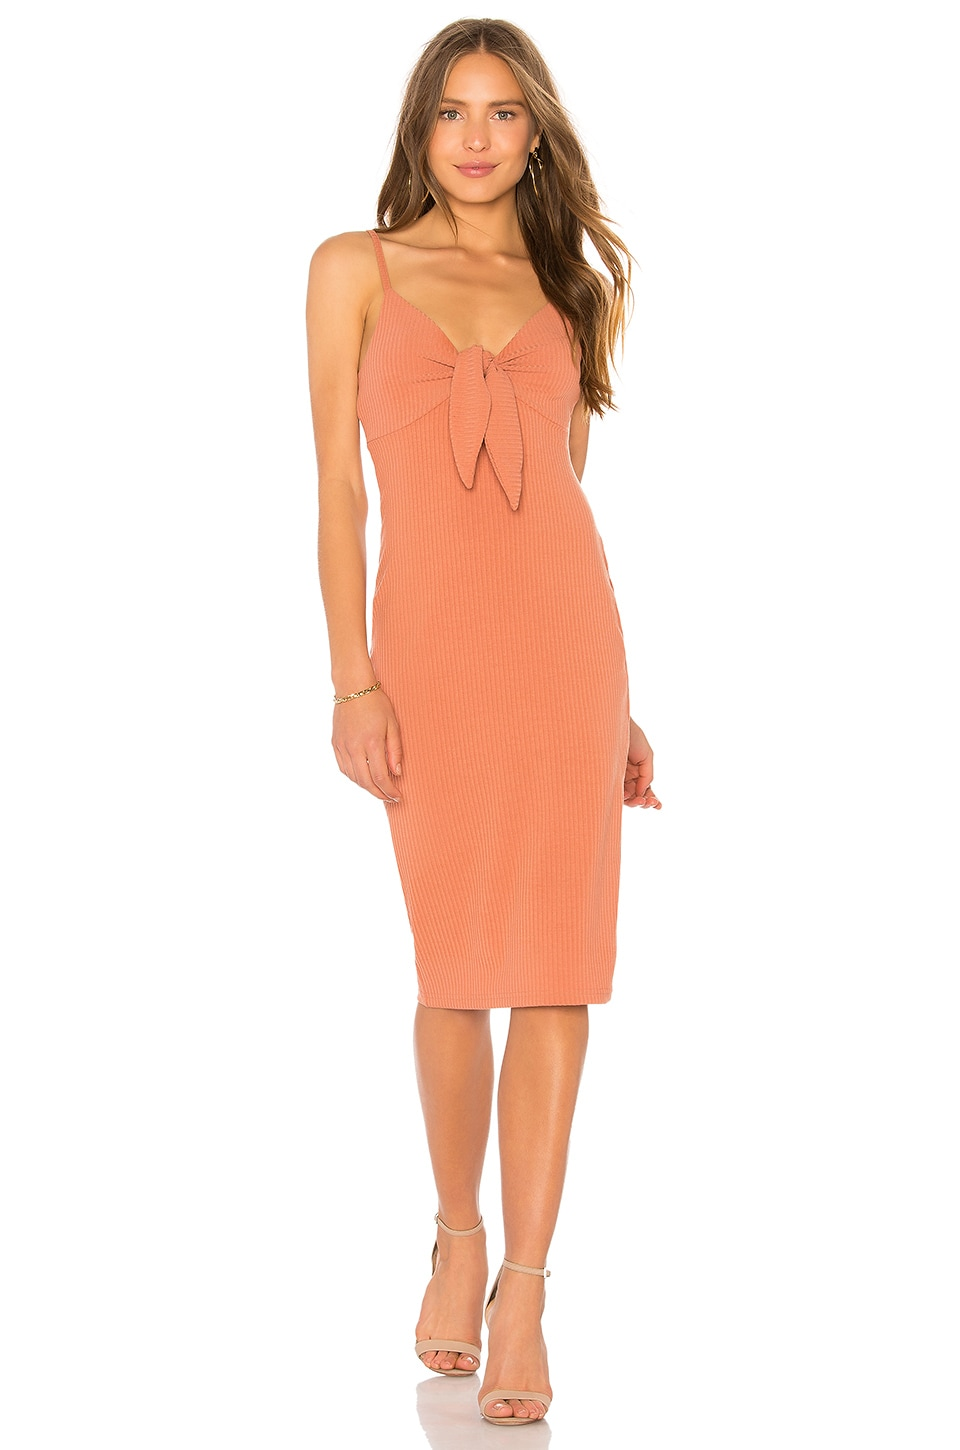 MINKPINK Andalusia Tie Front Dress in Masala